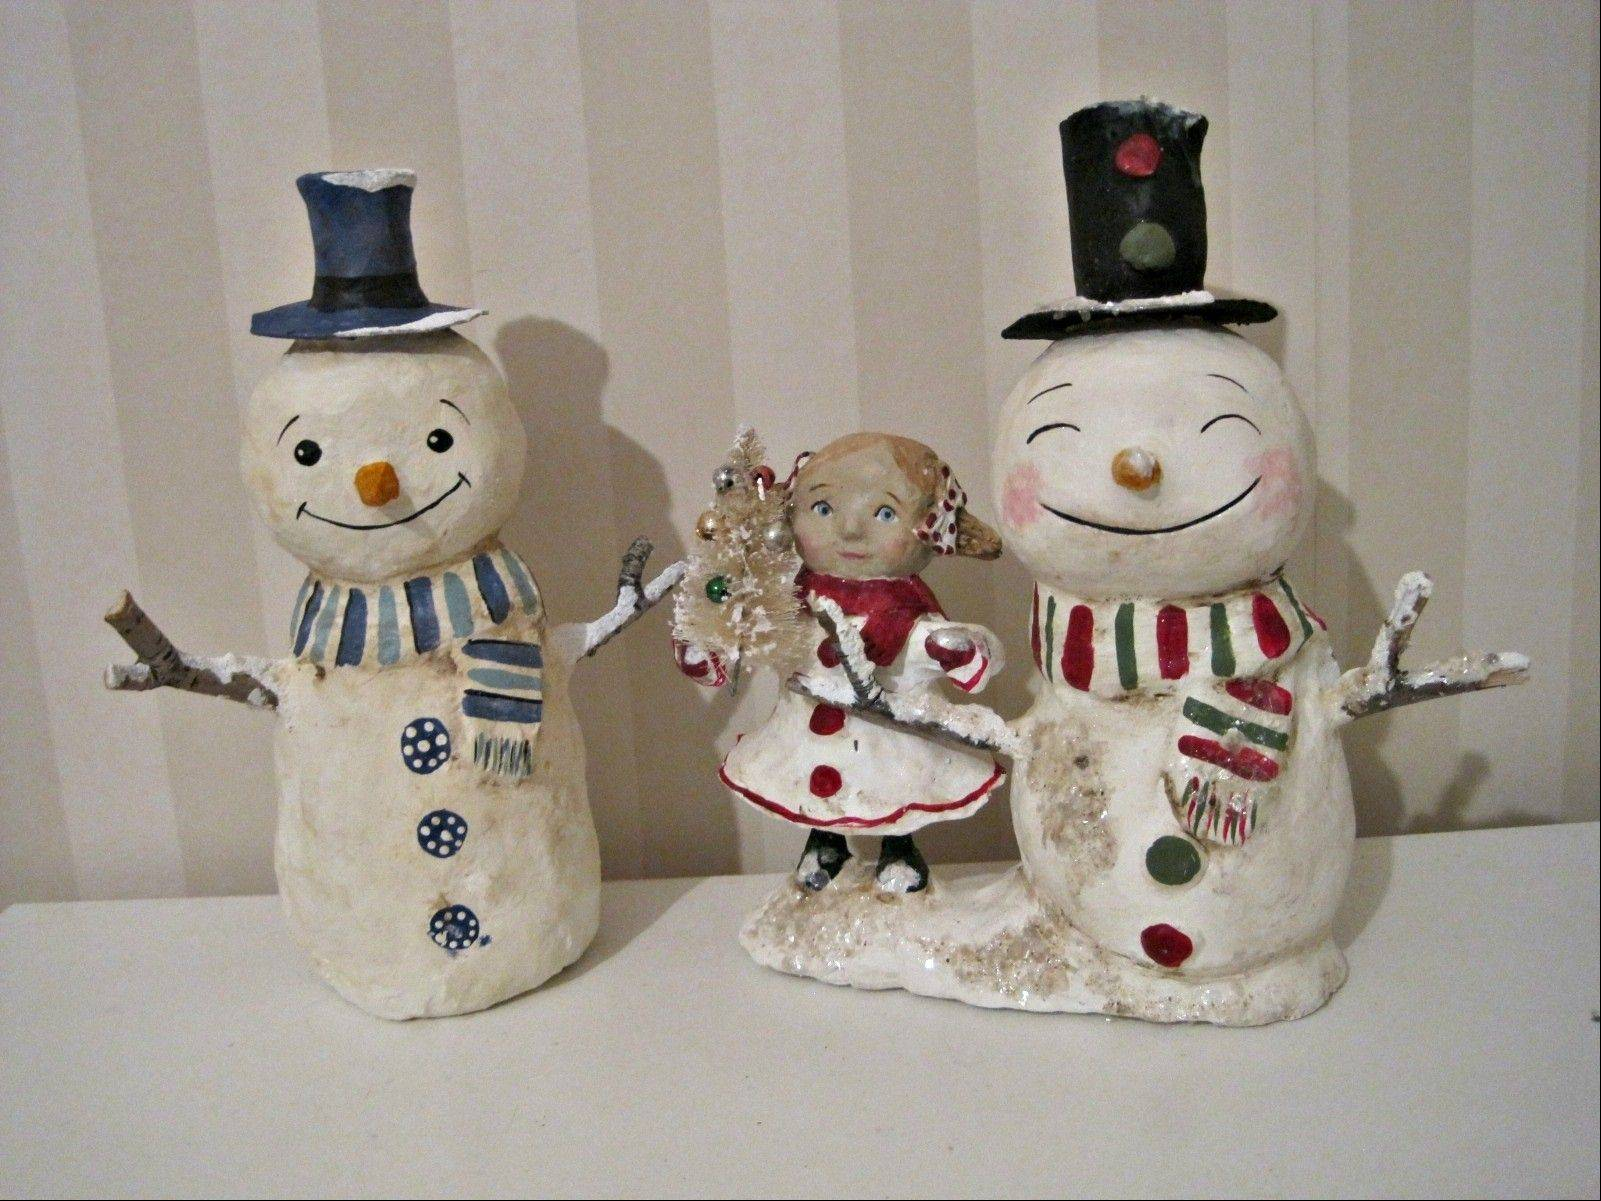 Find seasonal decorations and handcrafted items at the Christmas on the Fox Art and Craft Show, set for Saturday and Sunday, Nov. 23-24 at the Kane County Fairgrounds Prairie Events Center.